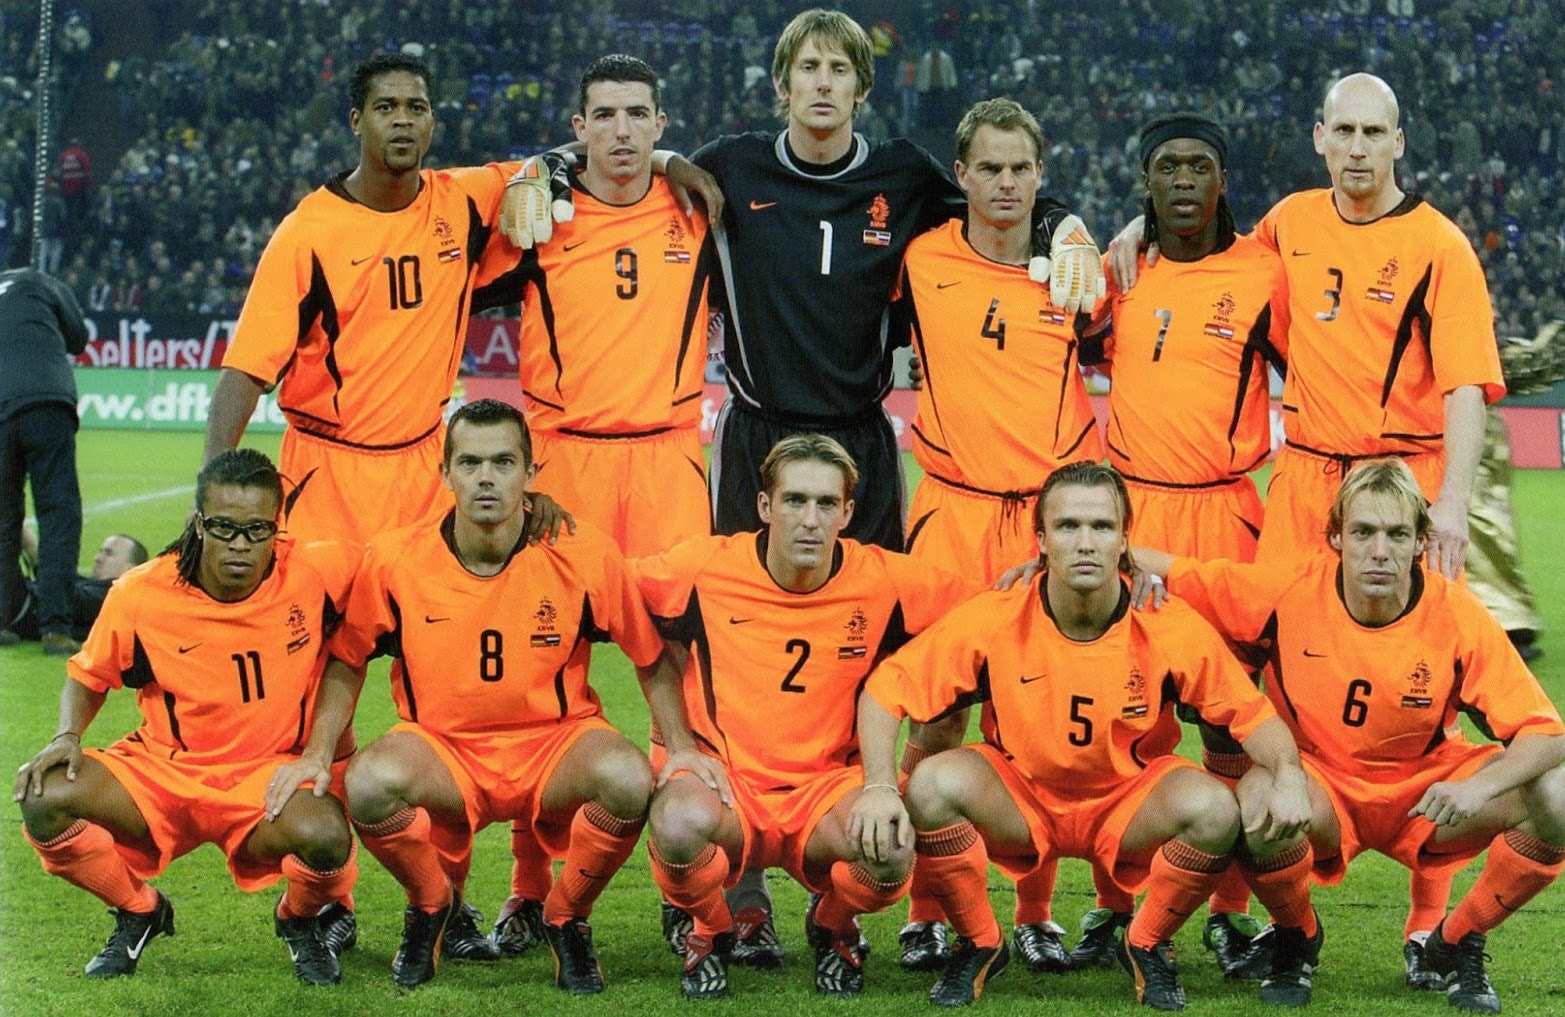 2013 classic kit - Page 7 Germany-holland-2002-2